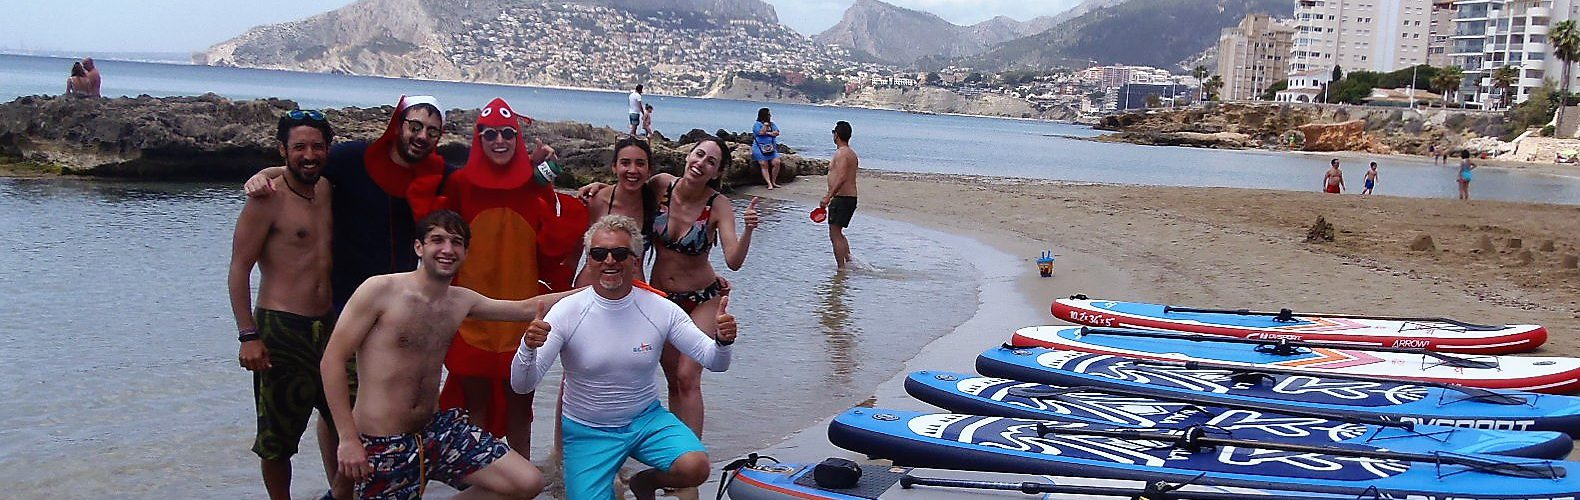 We organize stag nights in Calpe going for SUP